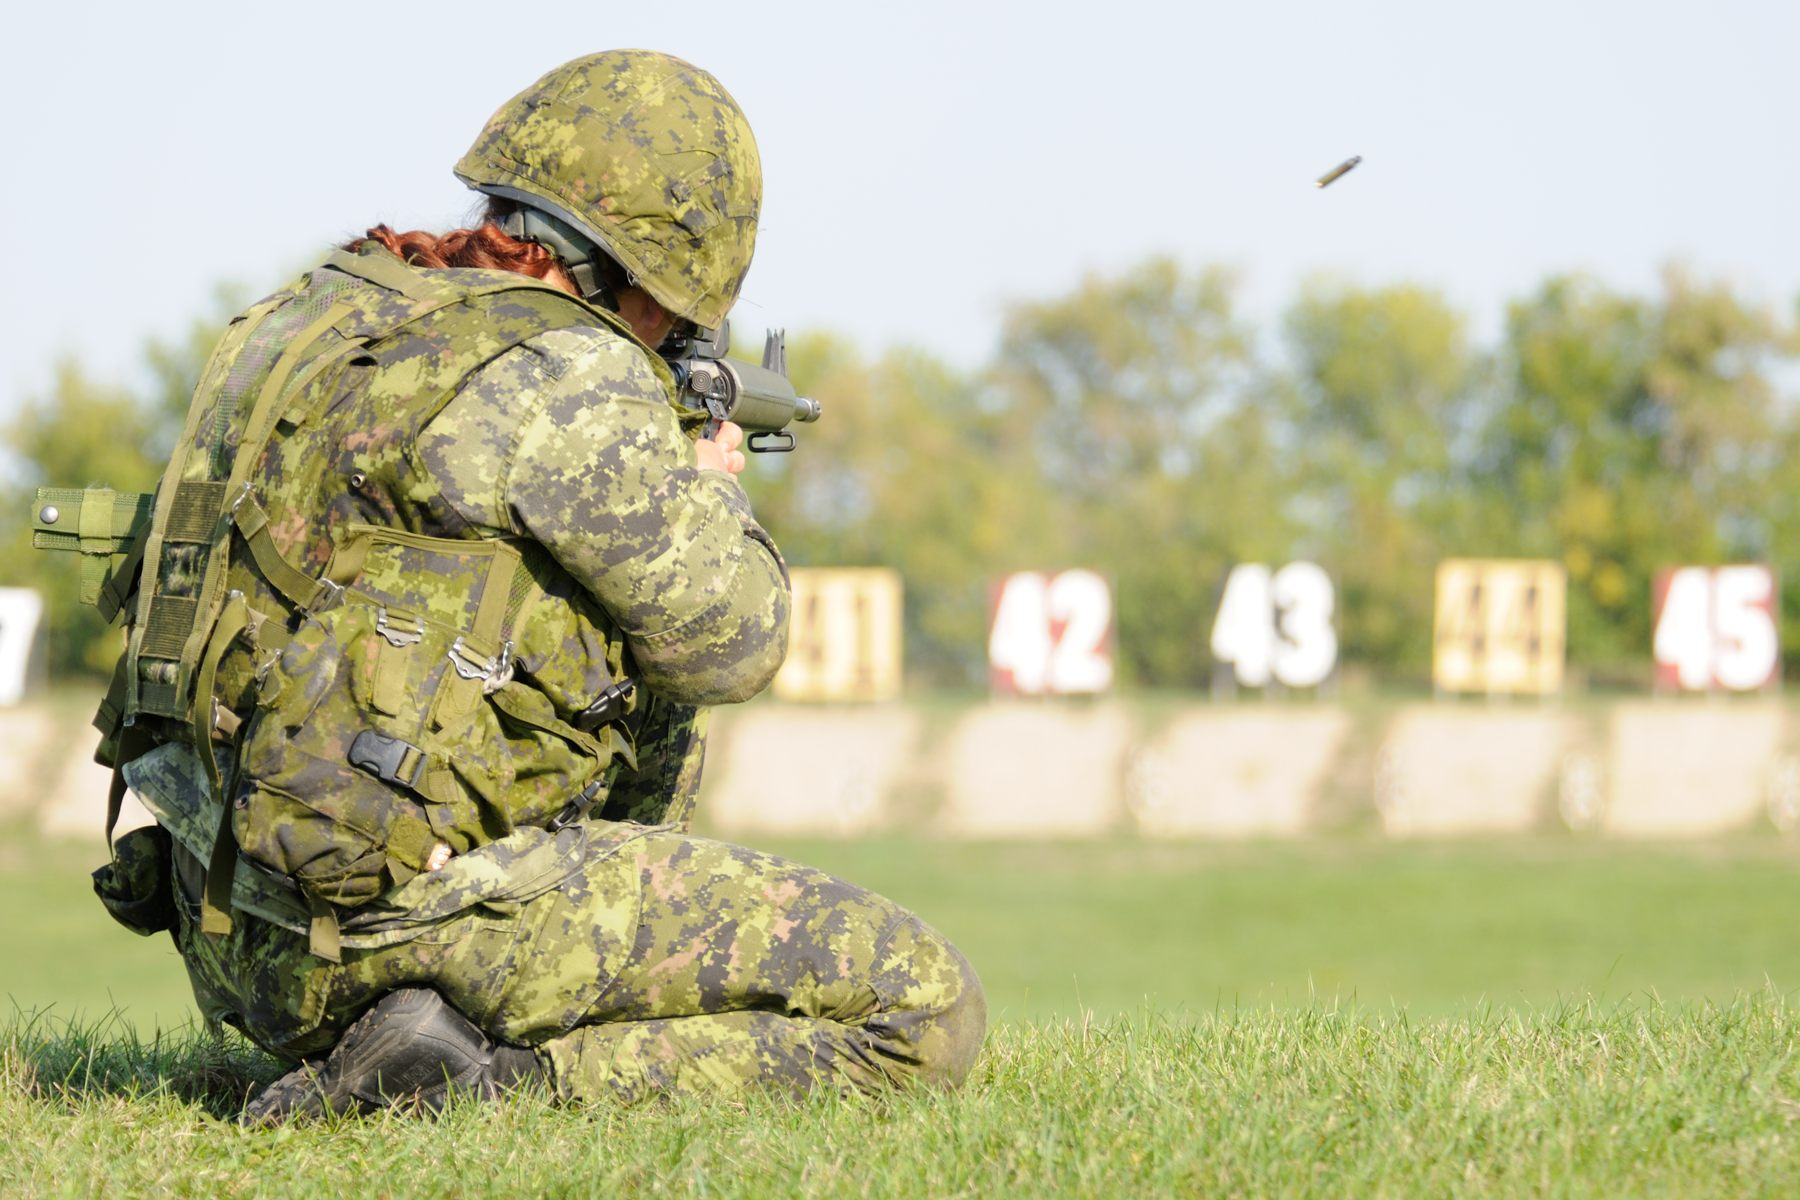 September 13, 2012 - Competitor Master Corporal Tatyana Danlyshyn, with the Princess Louise Fusiliers, competes during the rifle portion of the Canadian Forces Skills Arms Competition (CFSAC). Every September, Canadian Forces, Royal Canadian Mounted Police and international top shots gather at Connaught Range in Ottawa for the annual Canadian Forces Small Arms Concentration. This international skill at arms competition has been designed to test all components of the Canadian Forces in operational marksmanship with a service rifle, service pistol and light machine gun. All participants compete for the prestigious Queen's Medal for Champion Shot and a chance to represent the Canadian Forces at the British Army's Central Skill at Arms Meeting in England. Photo by: Sgt Veronica Arsenault, Army Public Affairs. © 2012 DND-MDN Canada